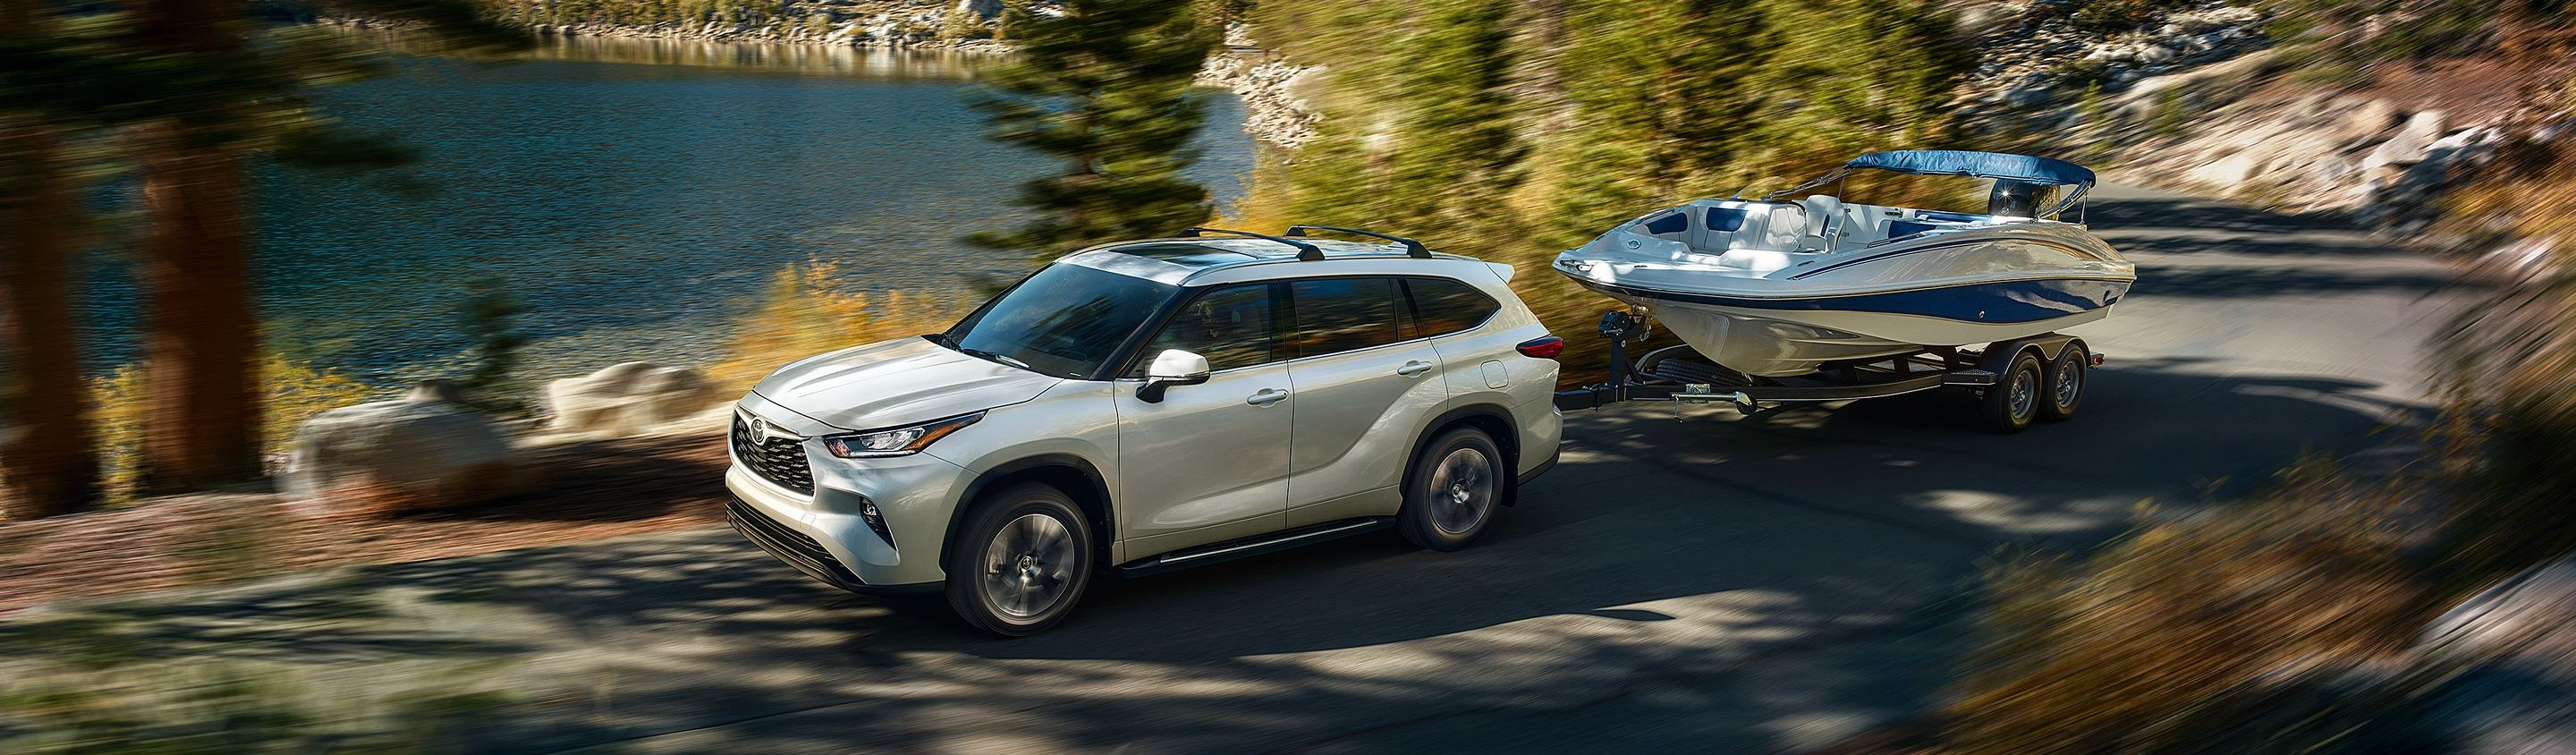 2020 Toyota Highlander Lease near Bridgeton, NJ